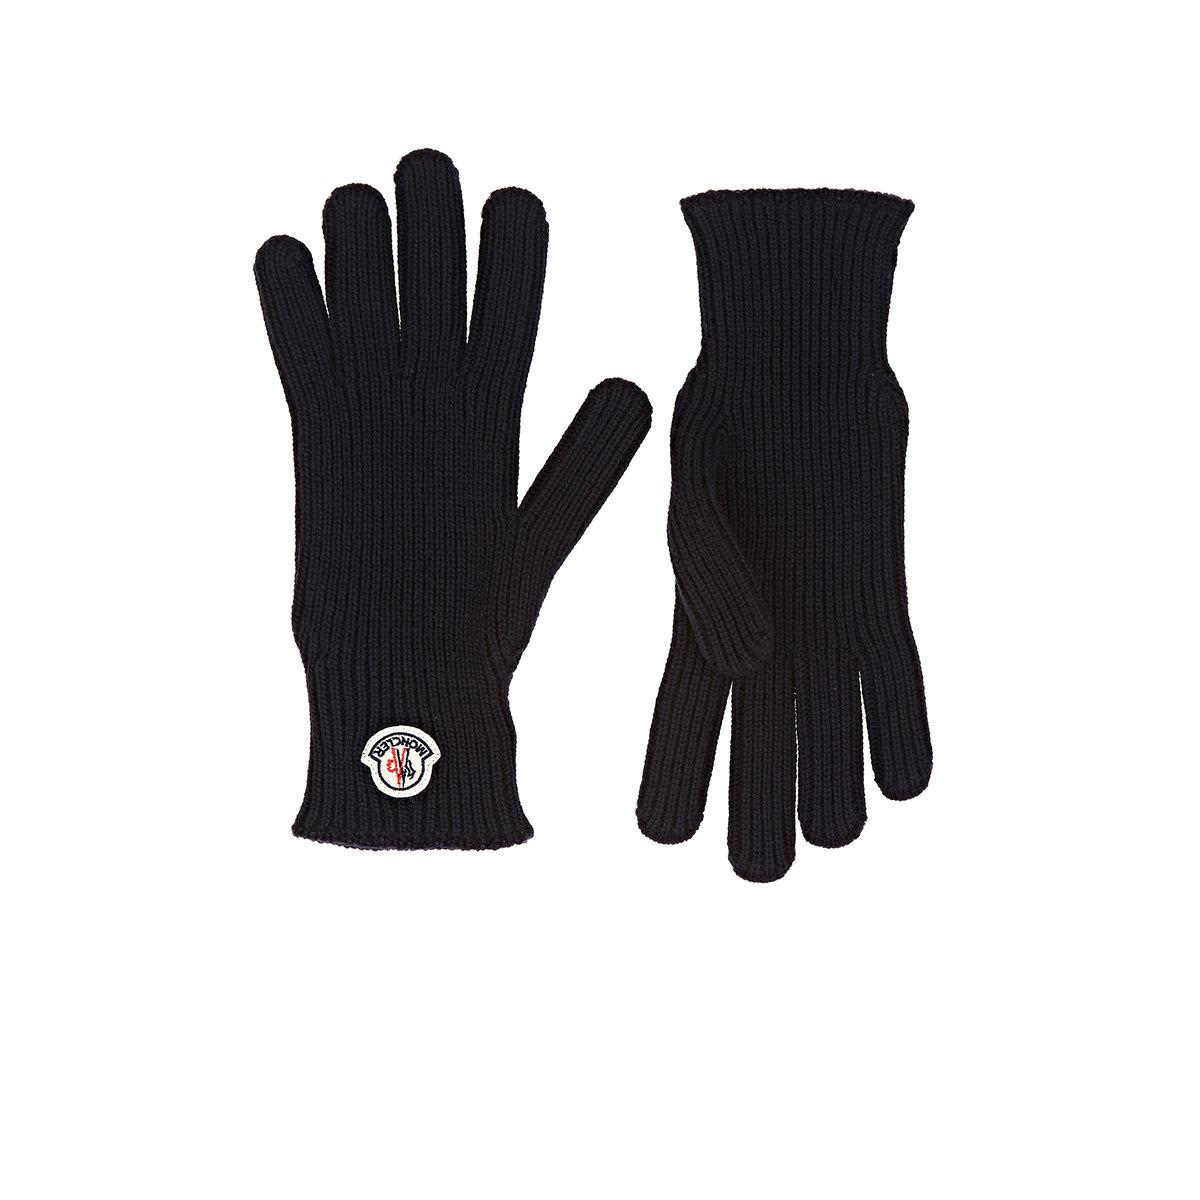 e2a340c19 Lyst - Moncler Guanti Virgin Wool Gloves in Blue